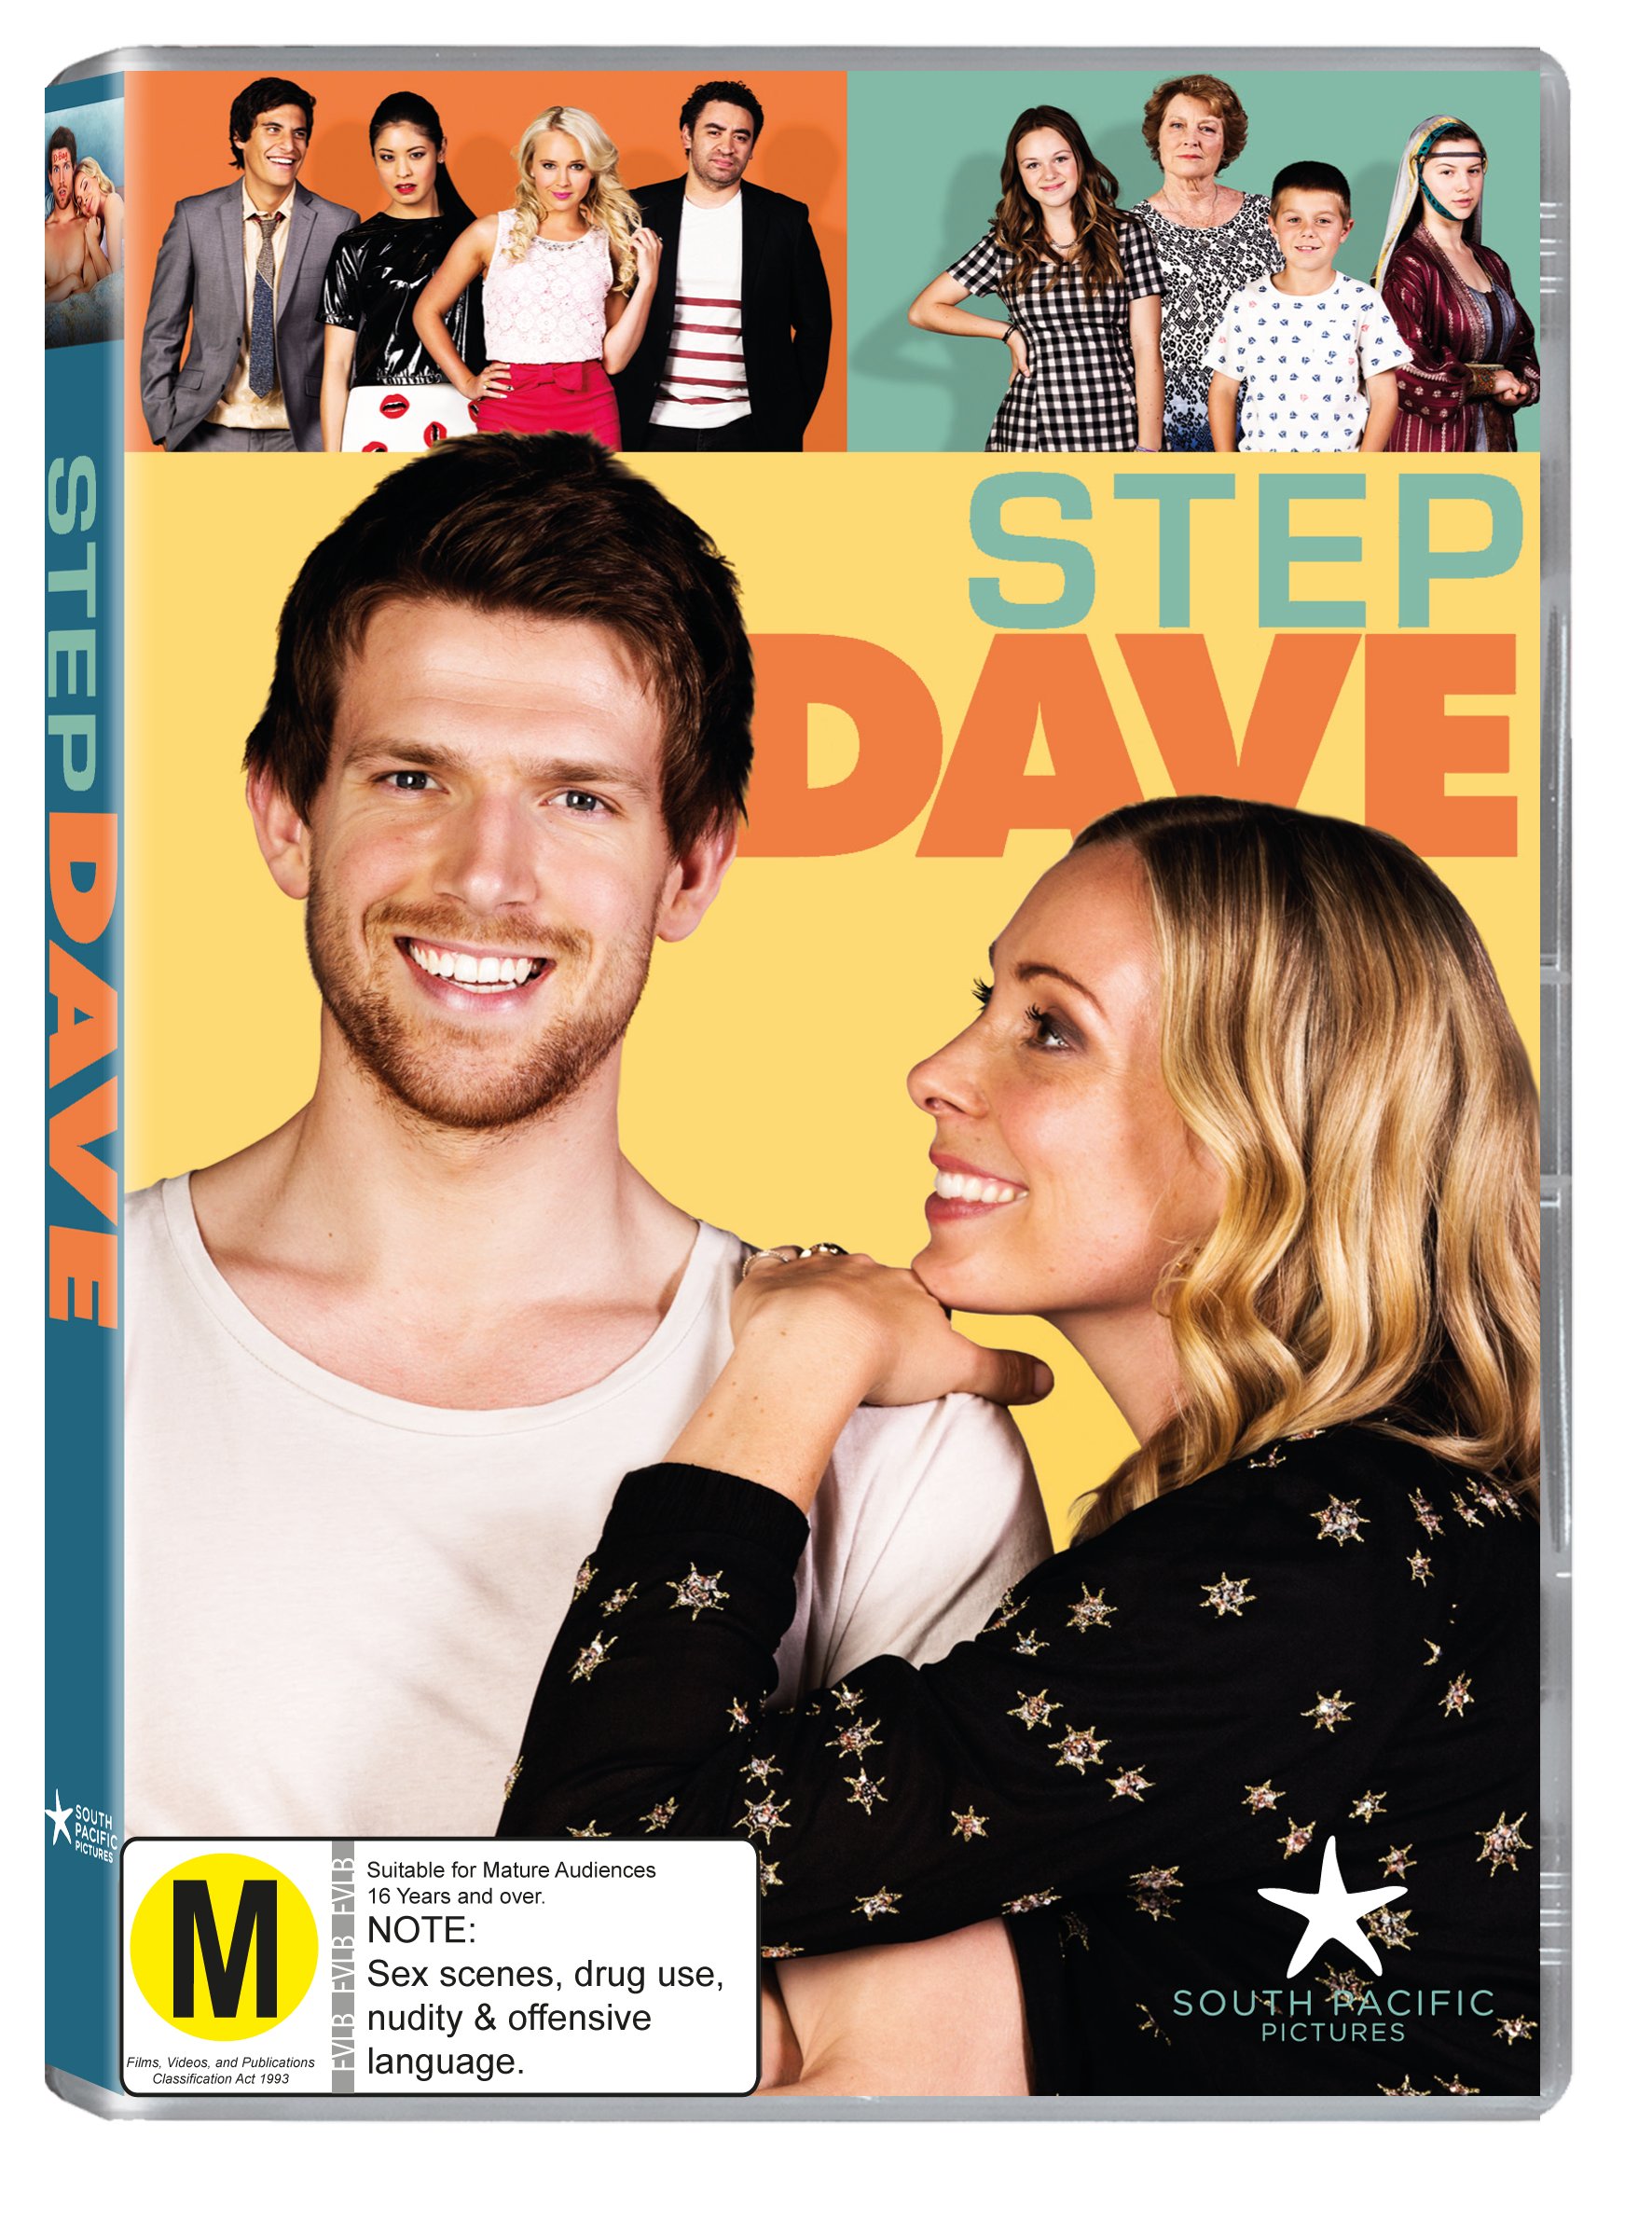 Step Dave season one DVD cover art